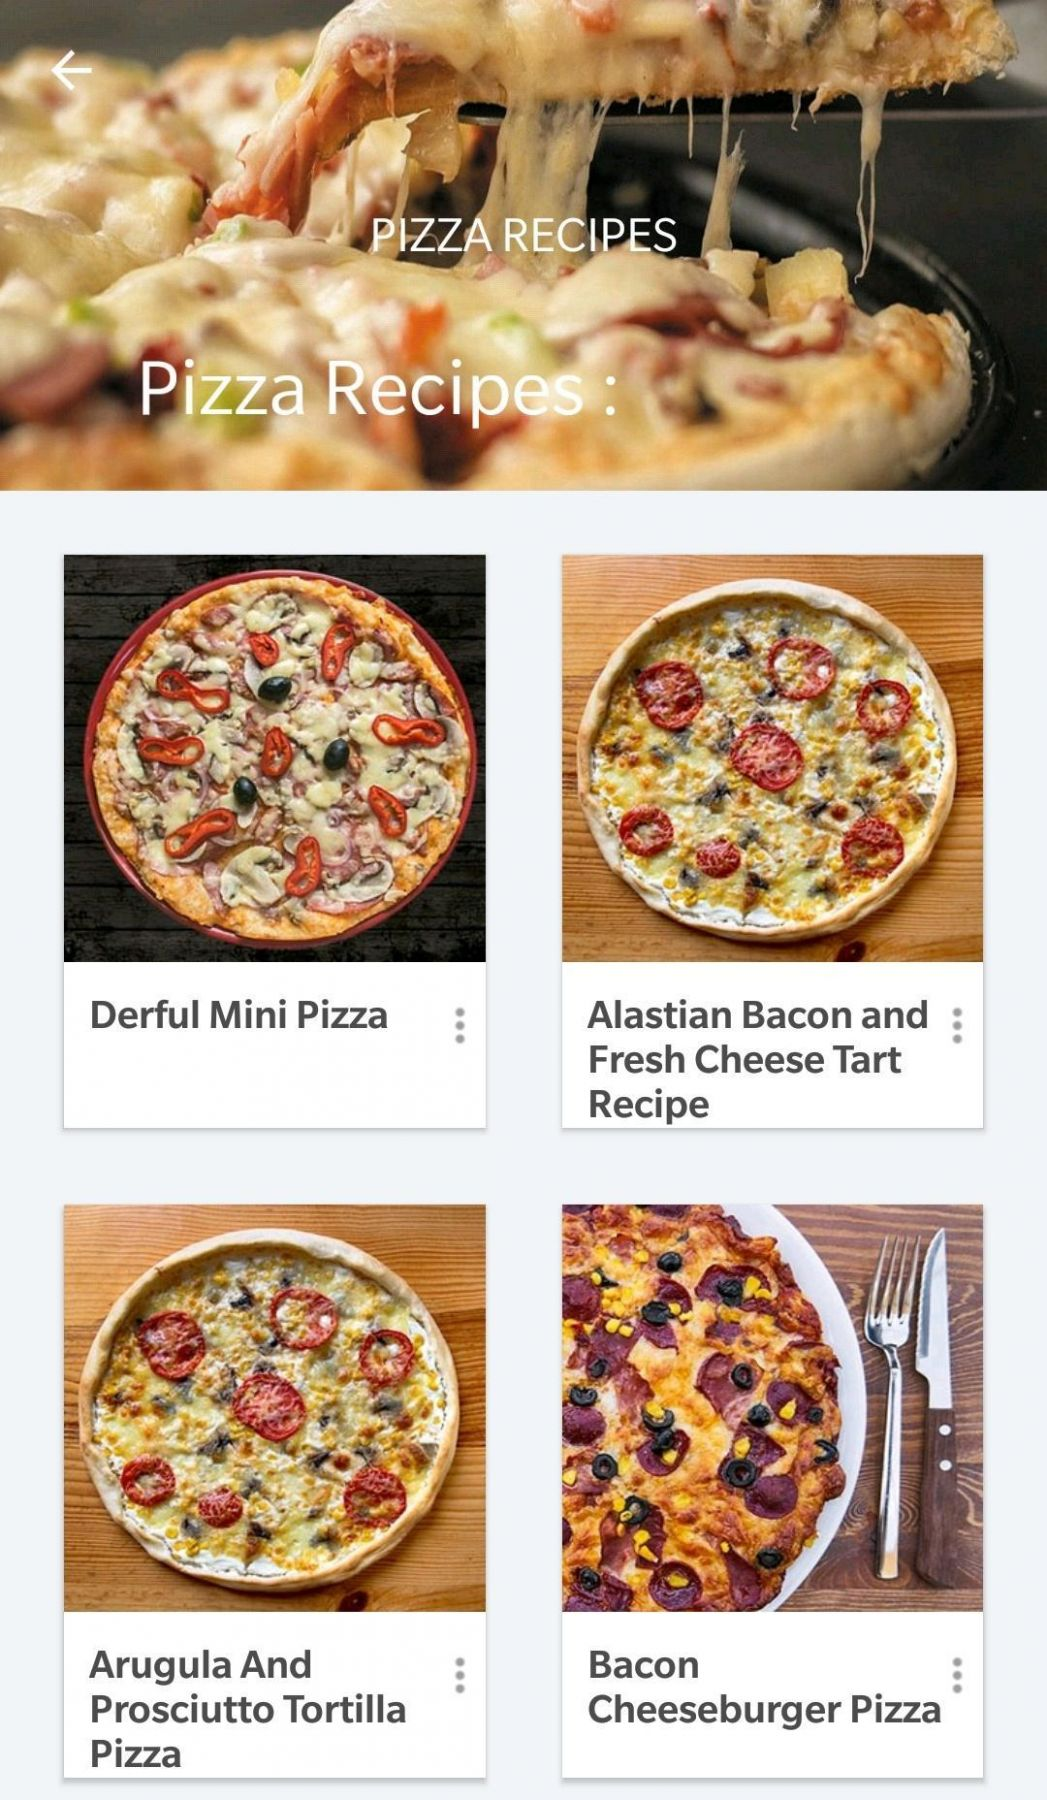 Pizza Recipes Offline for Android - APK Download